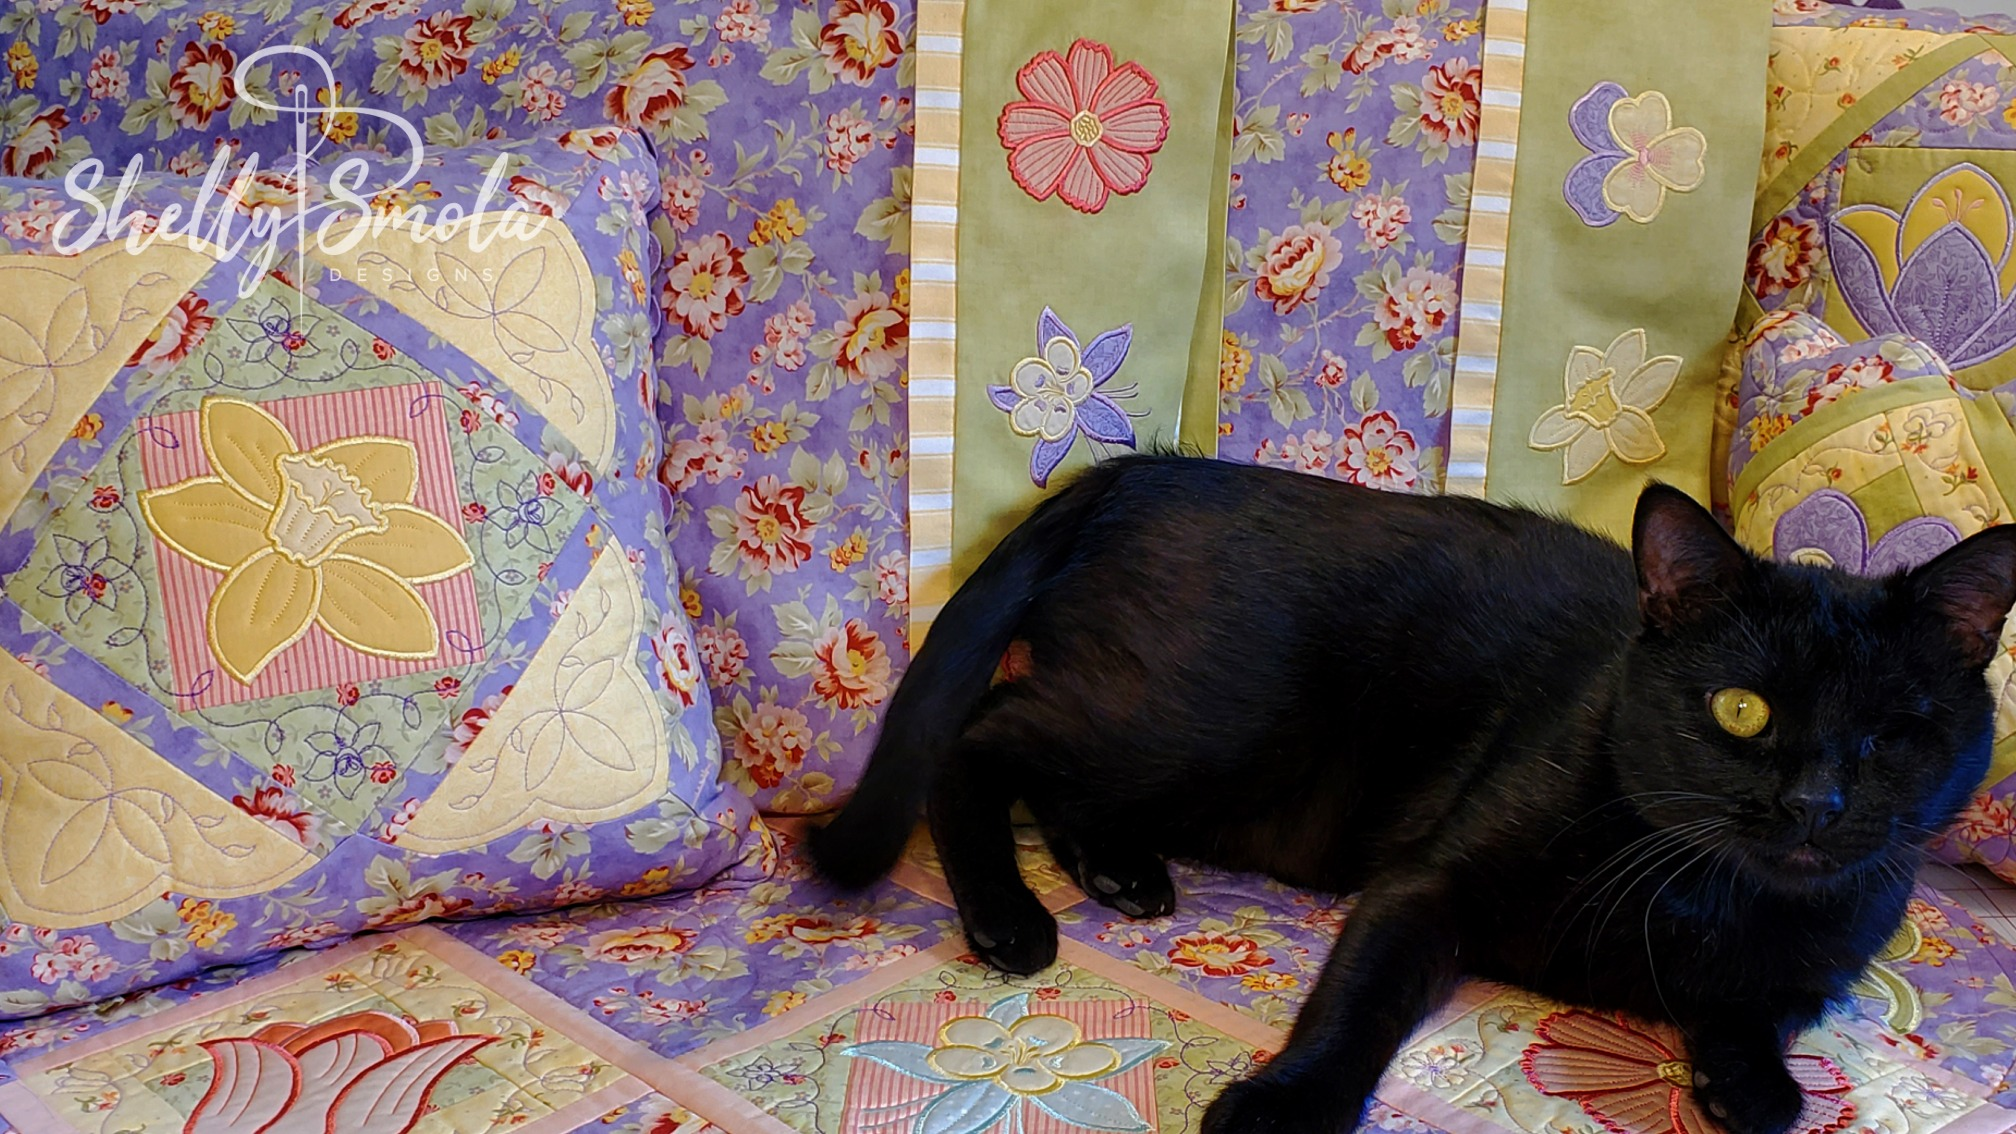 Spooky the Cat with the Flower Garden Quilt by Shelly Smola Designs